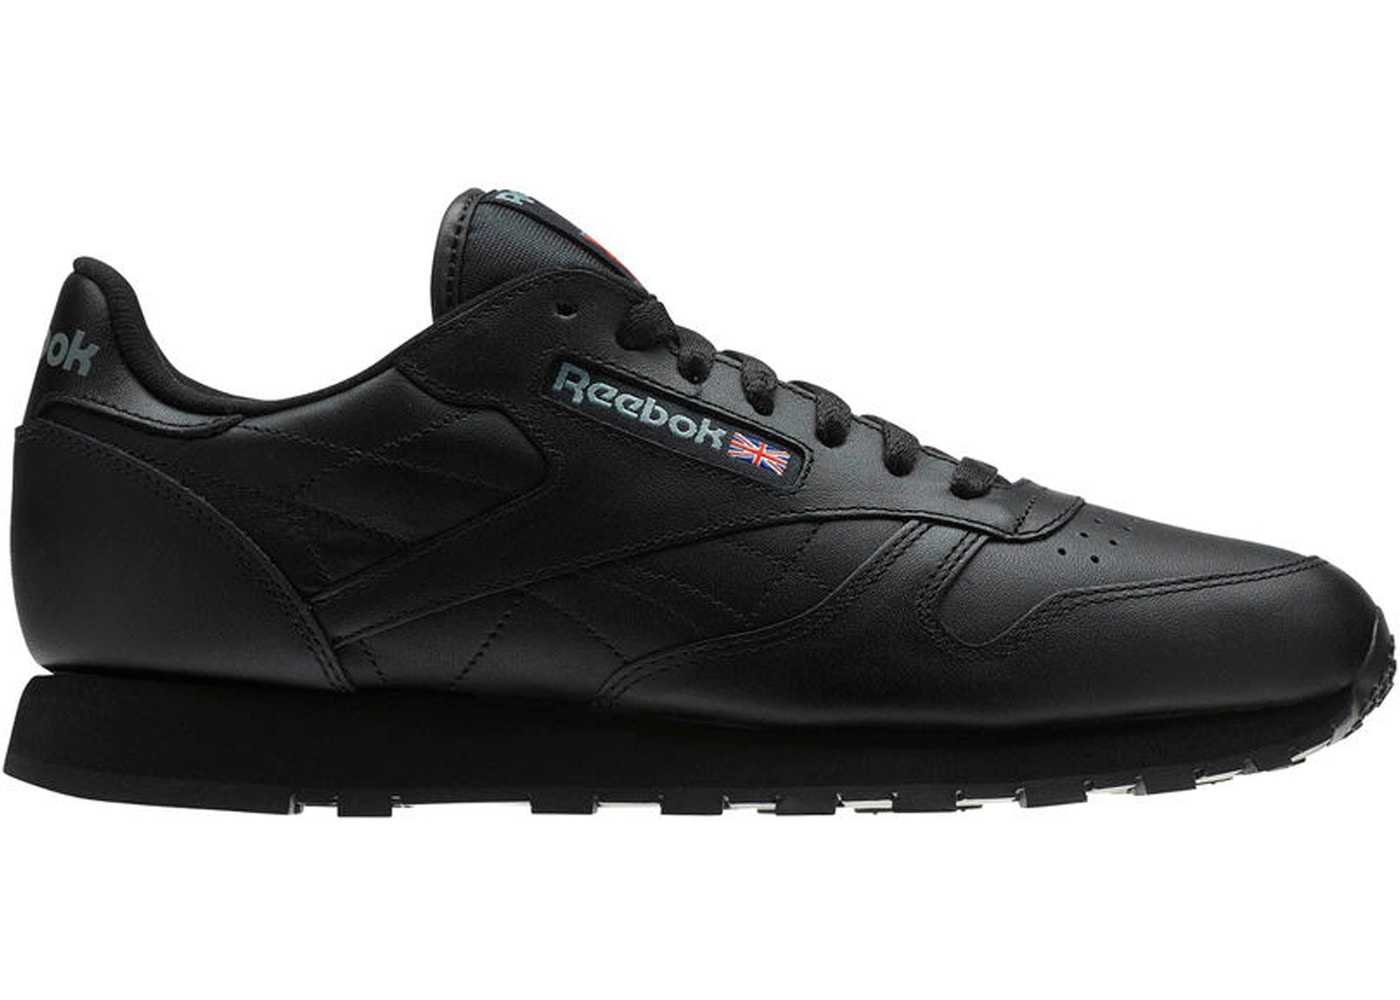 fbf3876122bb1 Reebok Classic Leather Black - 116